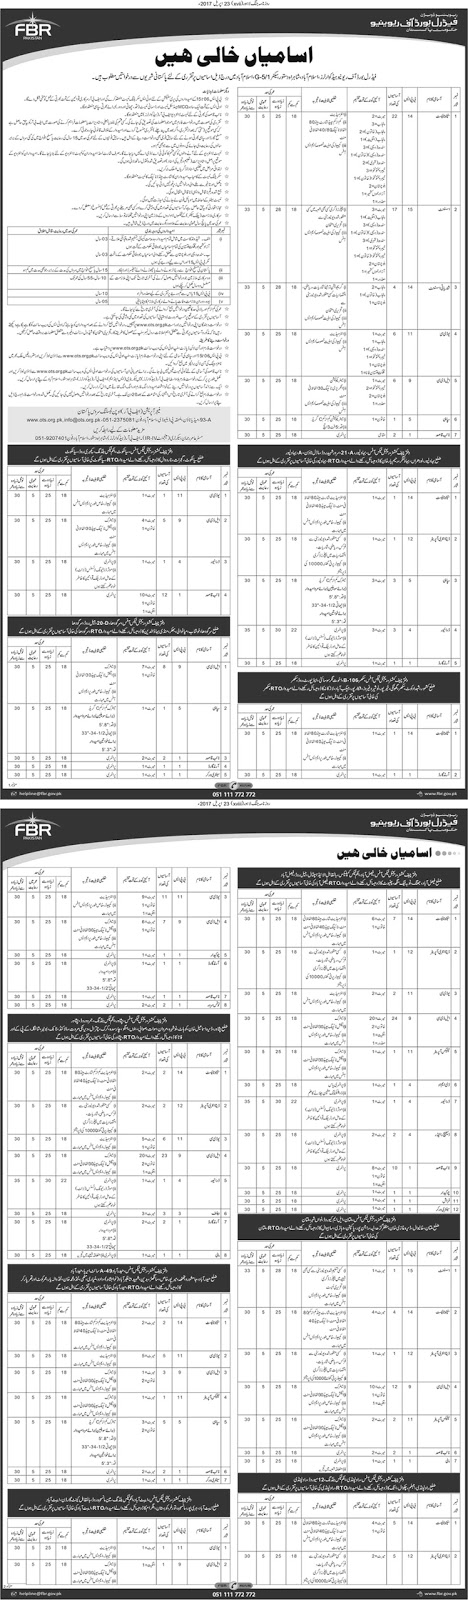 FBR Jobs In Federal Board Of Revenue Islamabad 23 April 2017